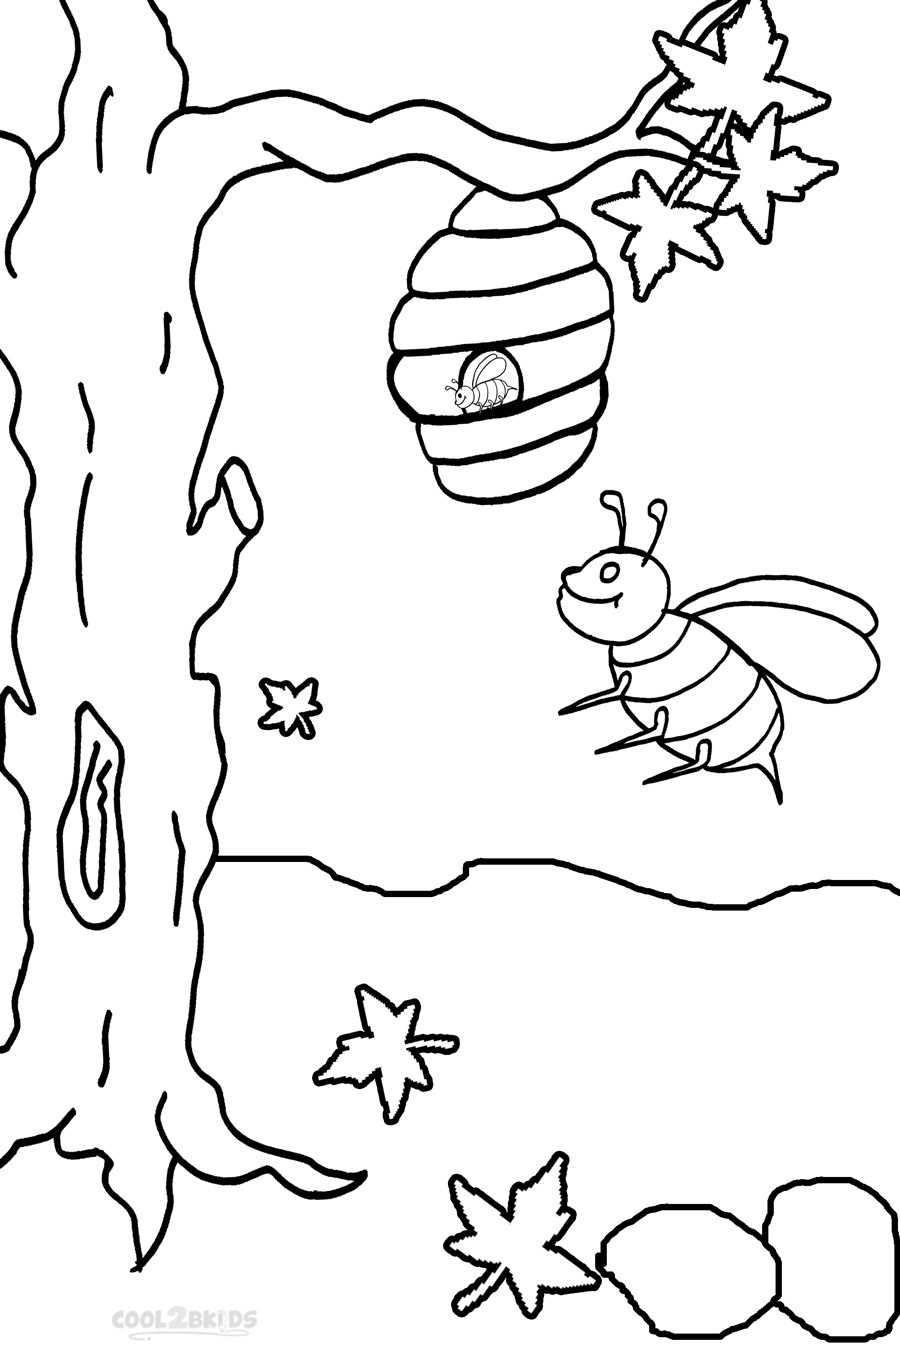 printable bumble bee coloring page bumble bee coloring page bubakids bubakidscom printable page bumble bee coloring